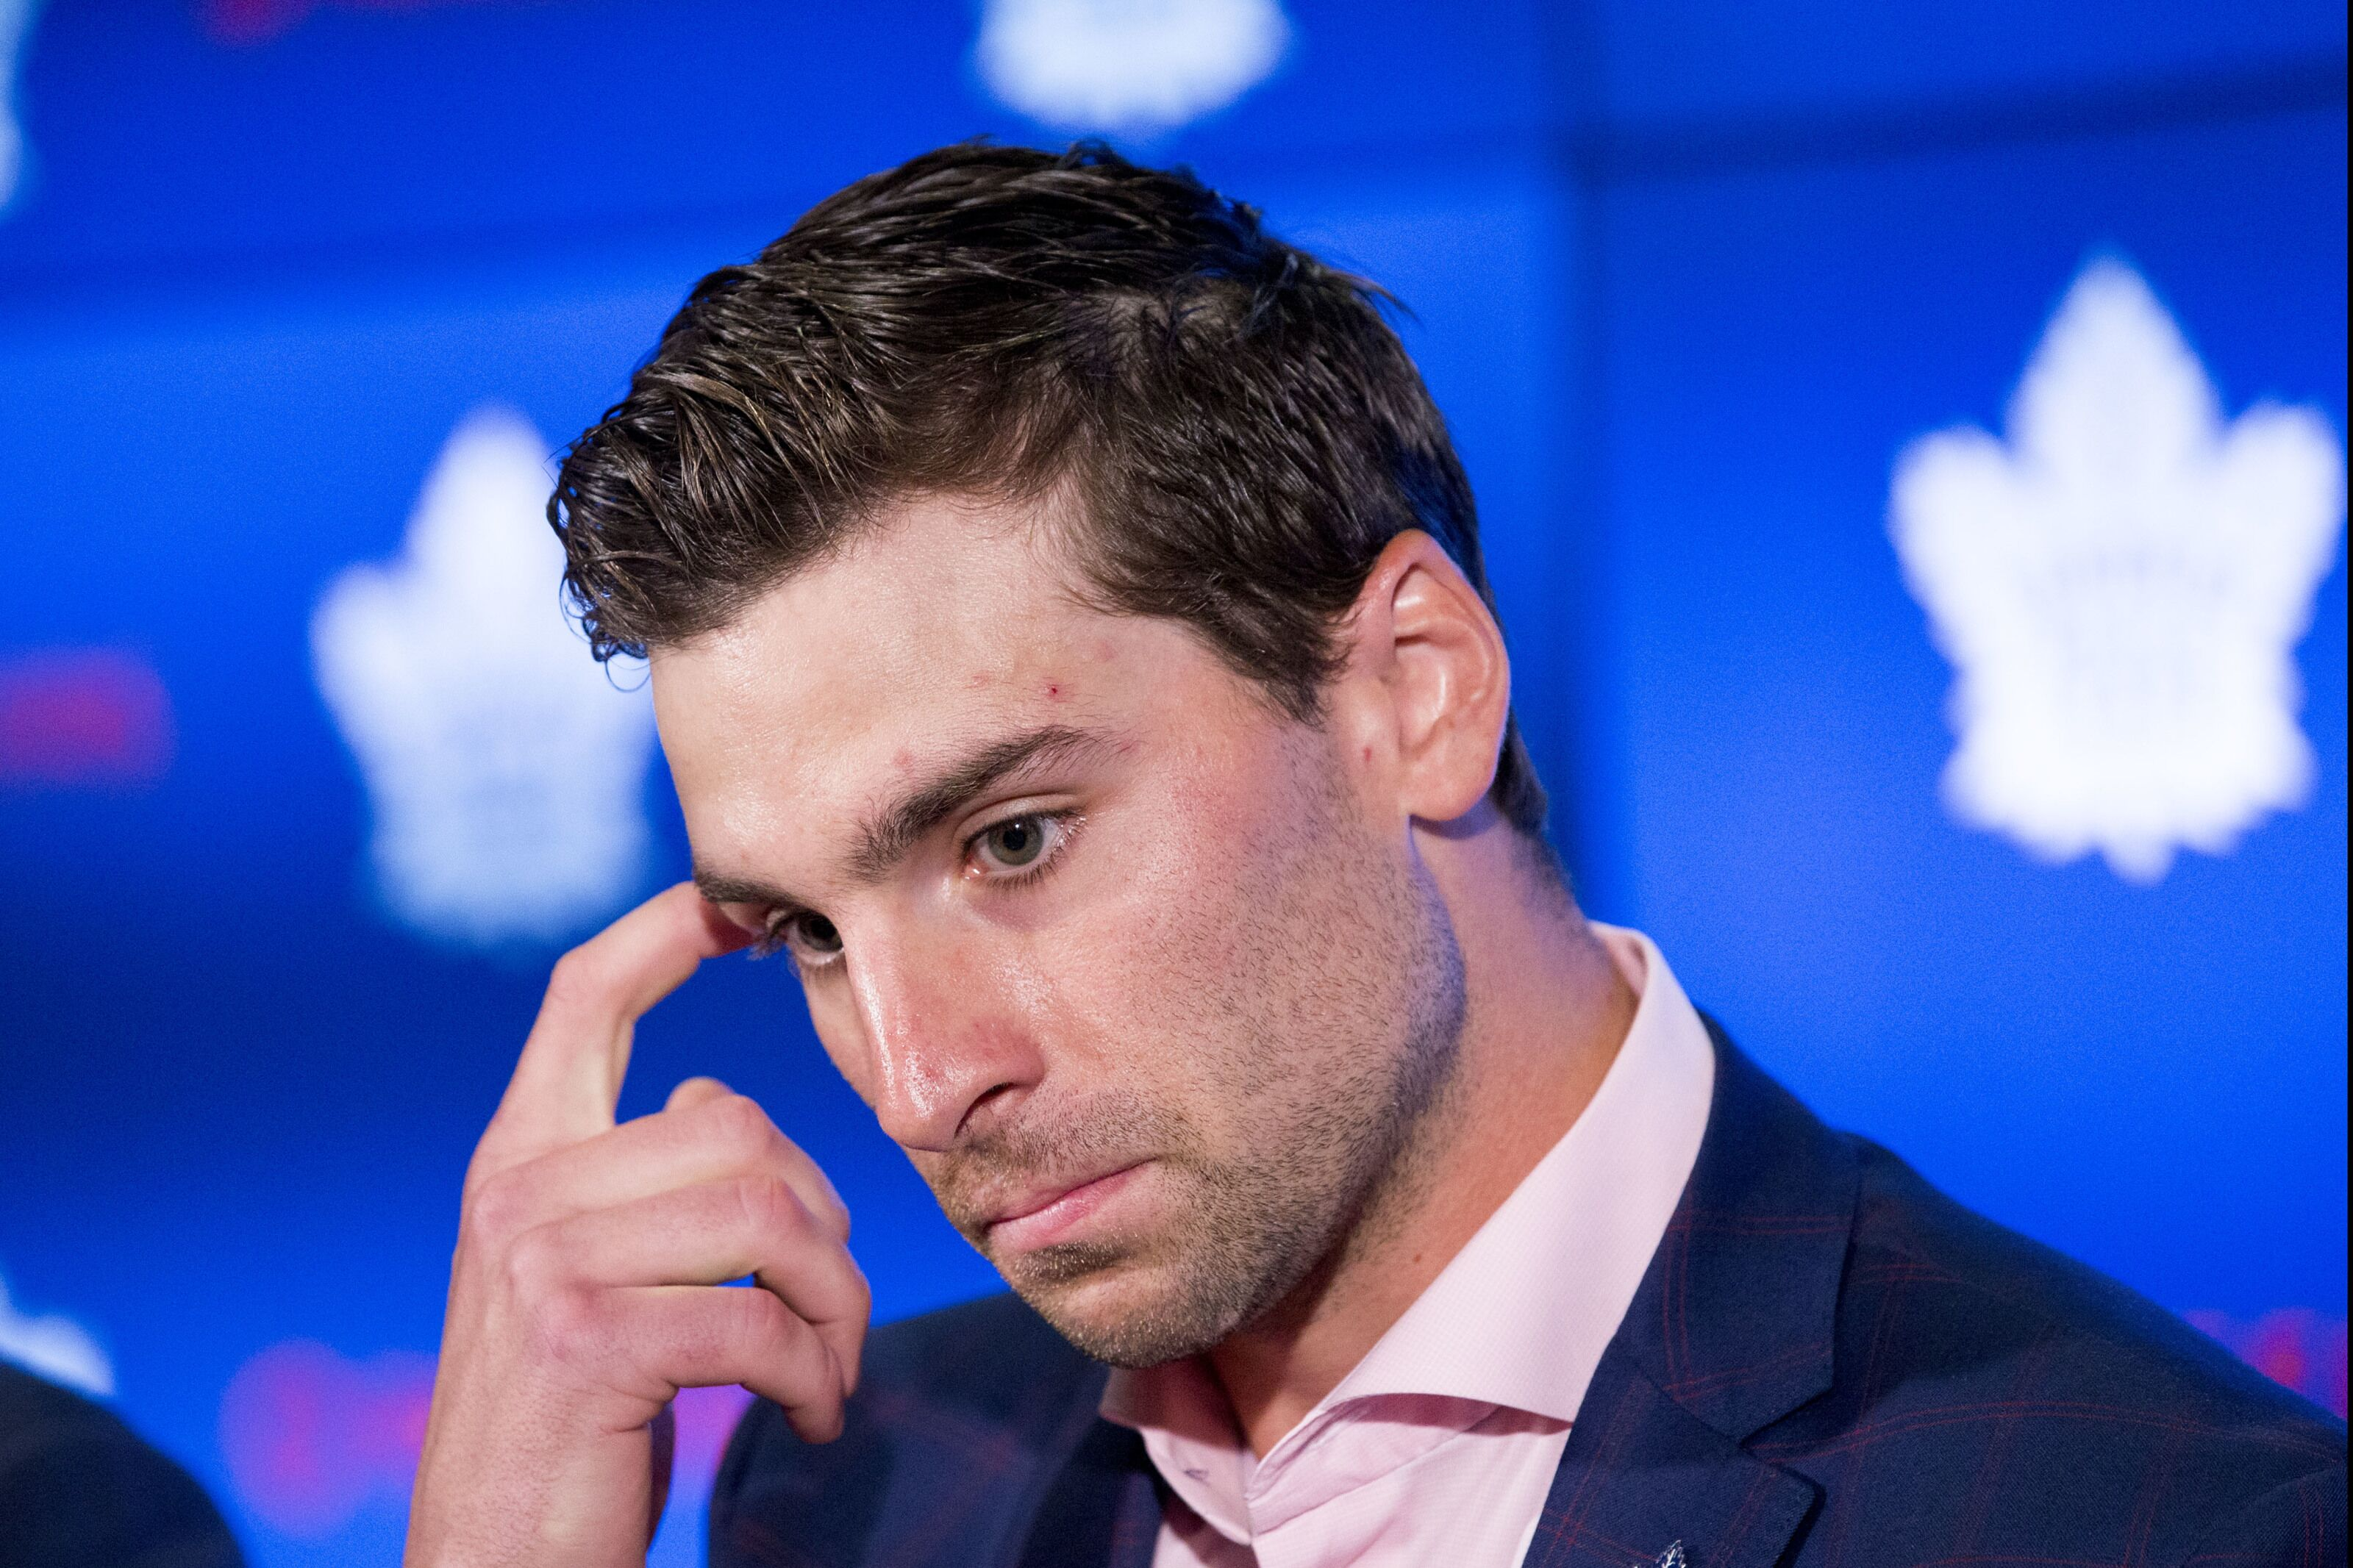 c0bd00328ea Toronto Maple Leafs: Is It Possible For Tavares To Be Bad?